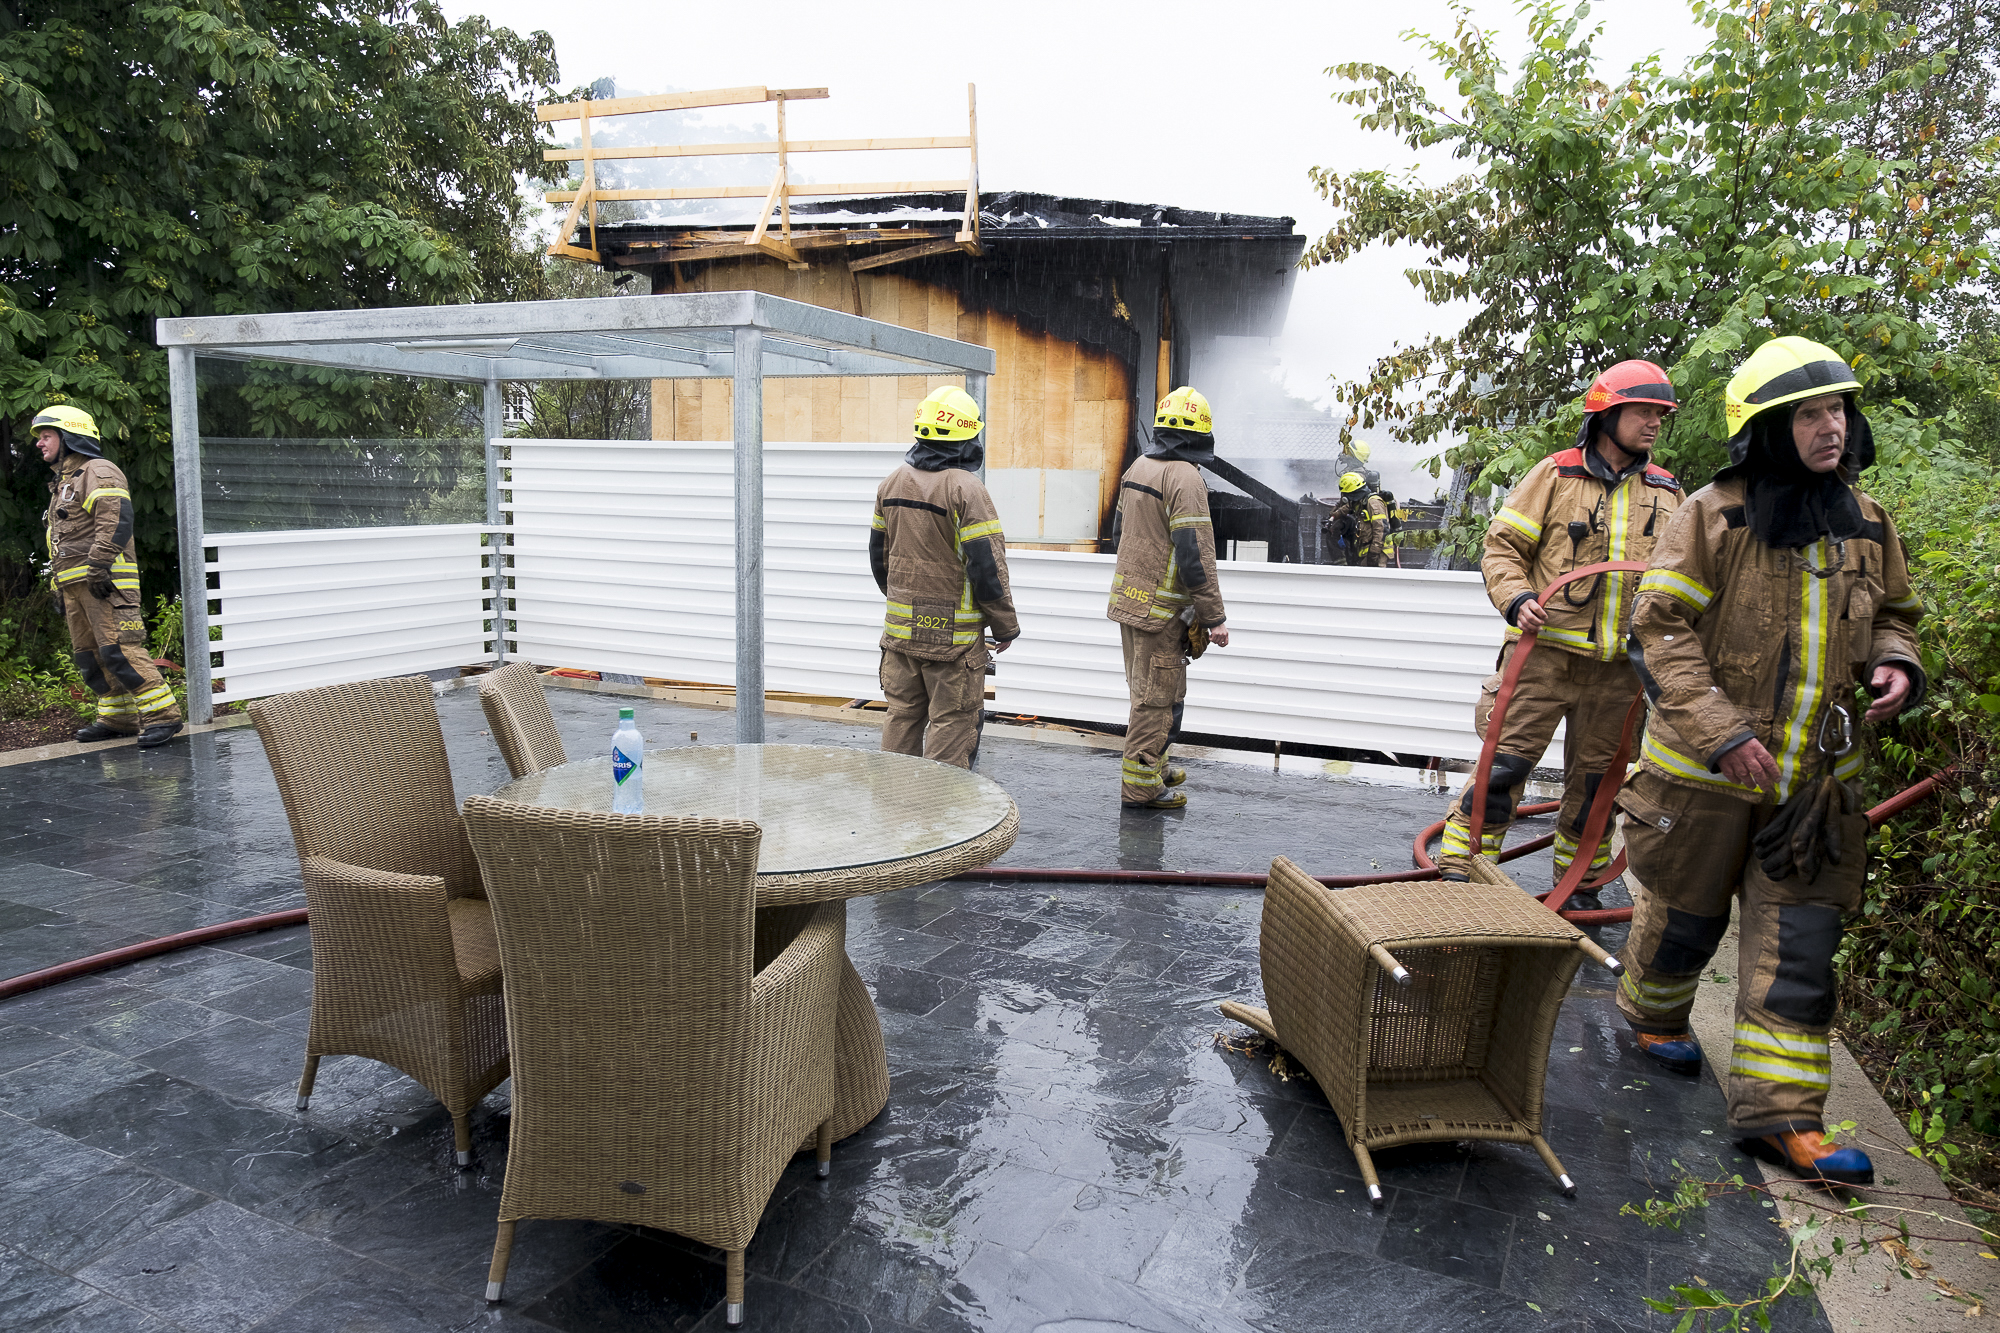 A group of firefighters extinguished a fire in a home that has under construction at Bygdøy, Oslo